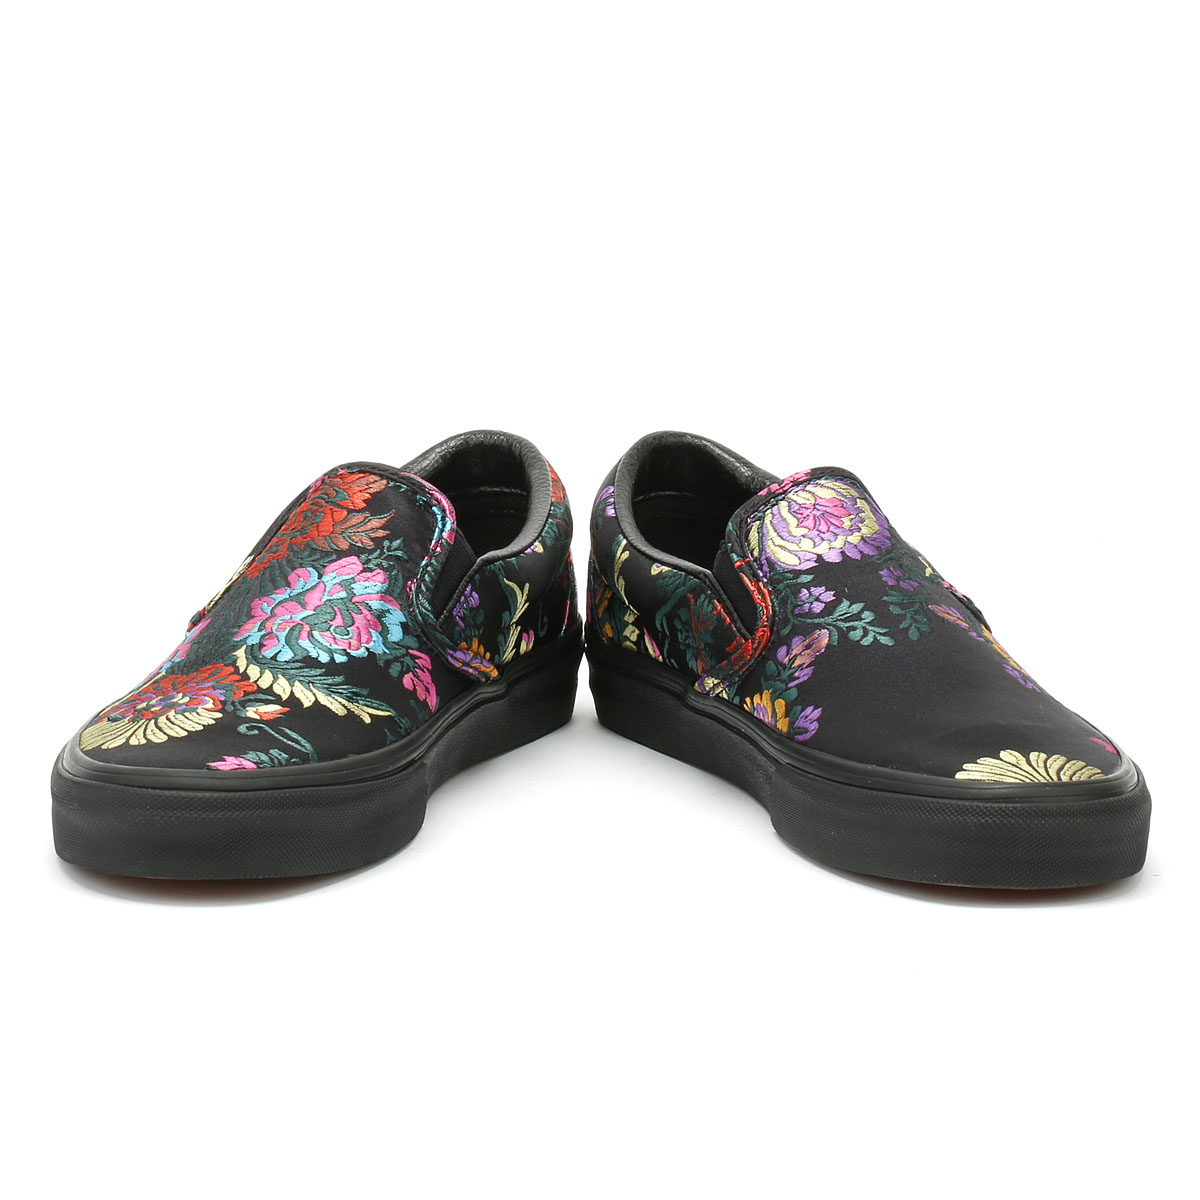 88e4f4cc1f9 Vans Classic Slip on Festival Satin Womens Black Trainers Casual Skate Shoes